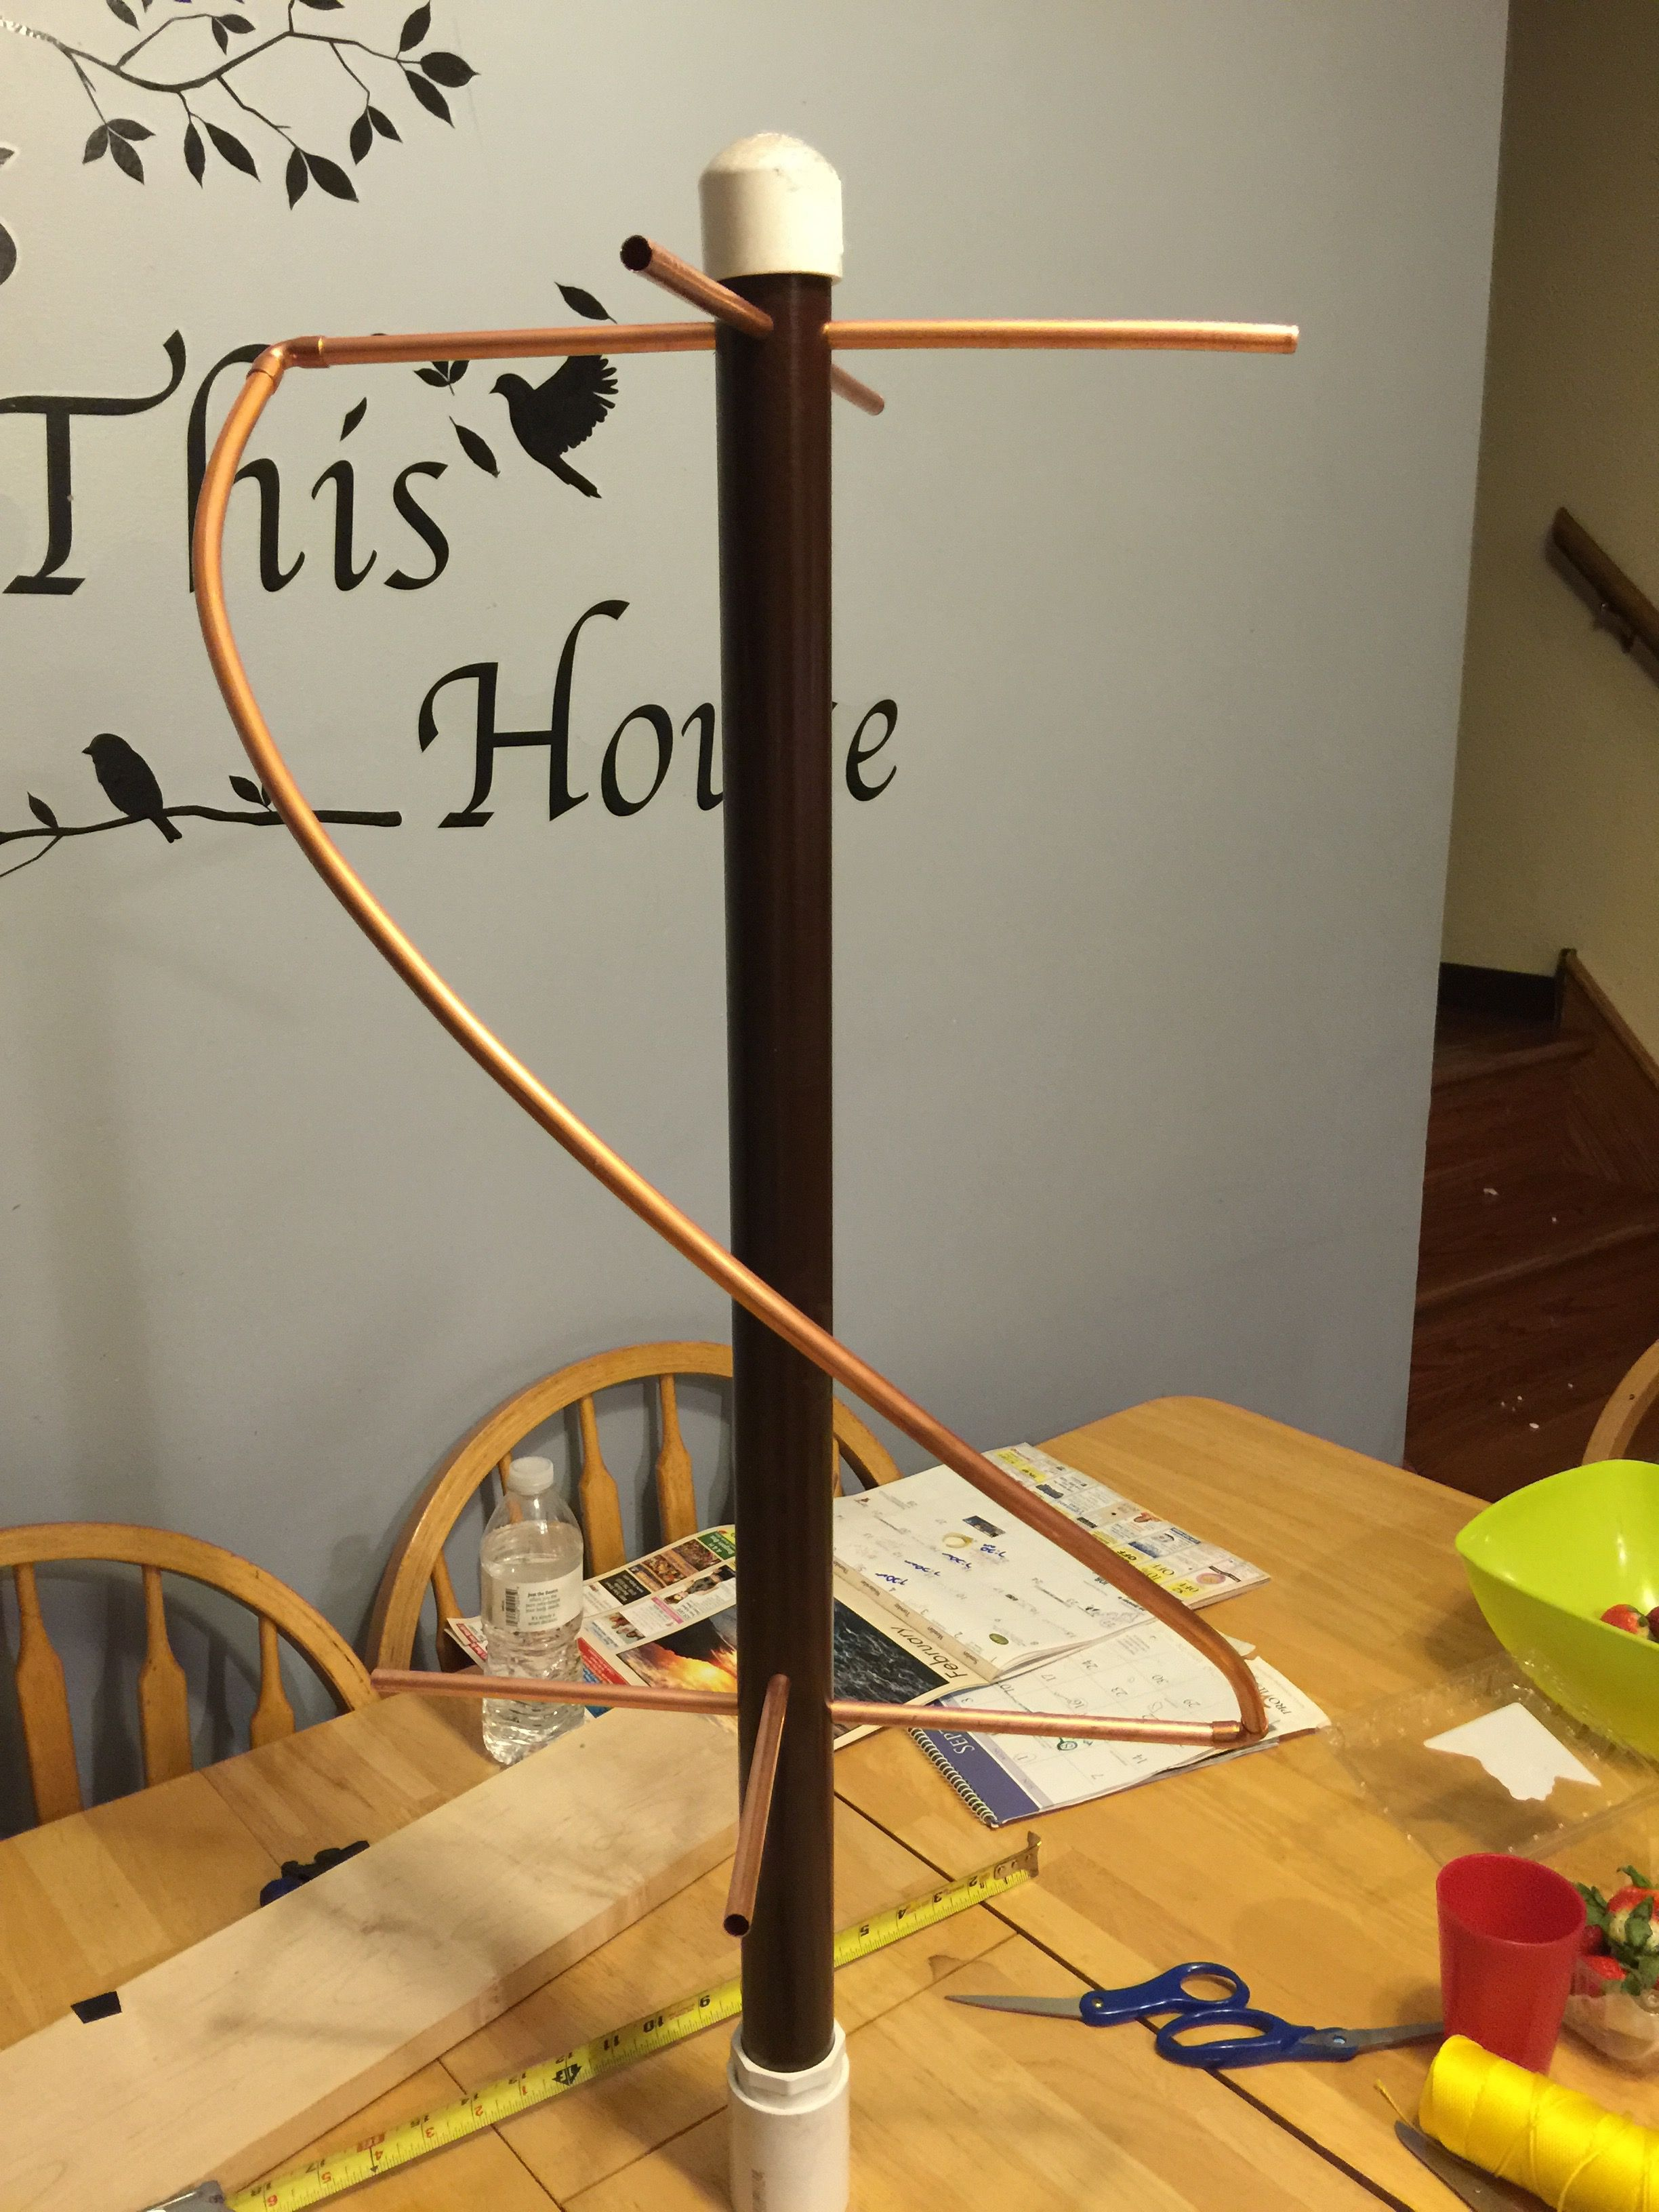 How To Build A QFH (Quadrifilar Helix Antenna) to Download Images